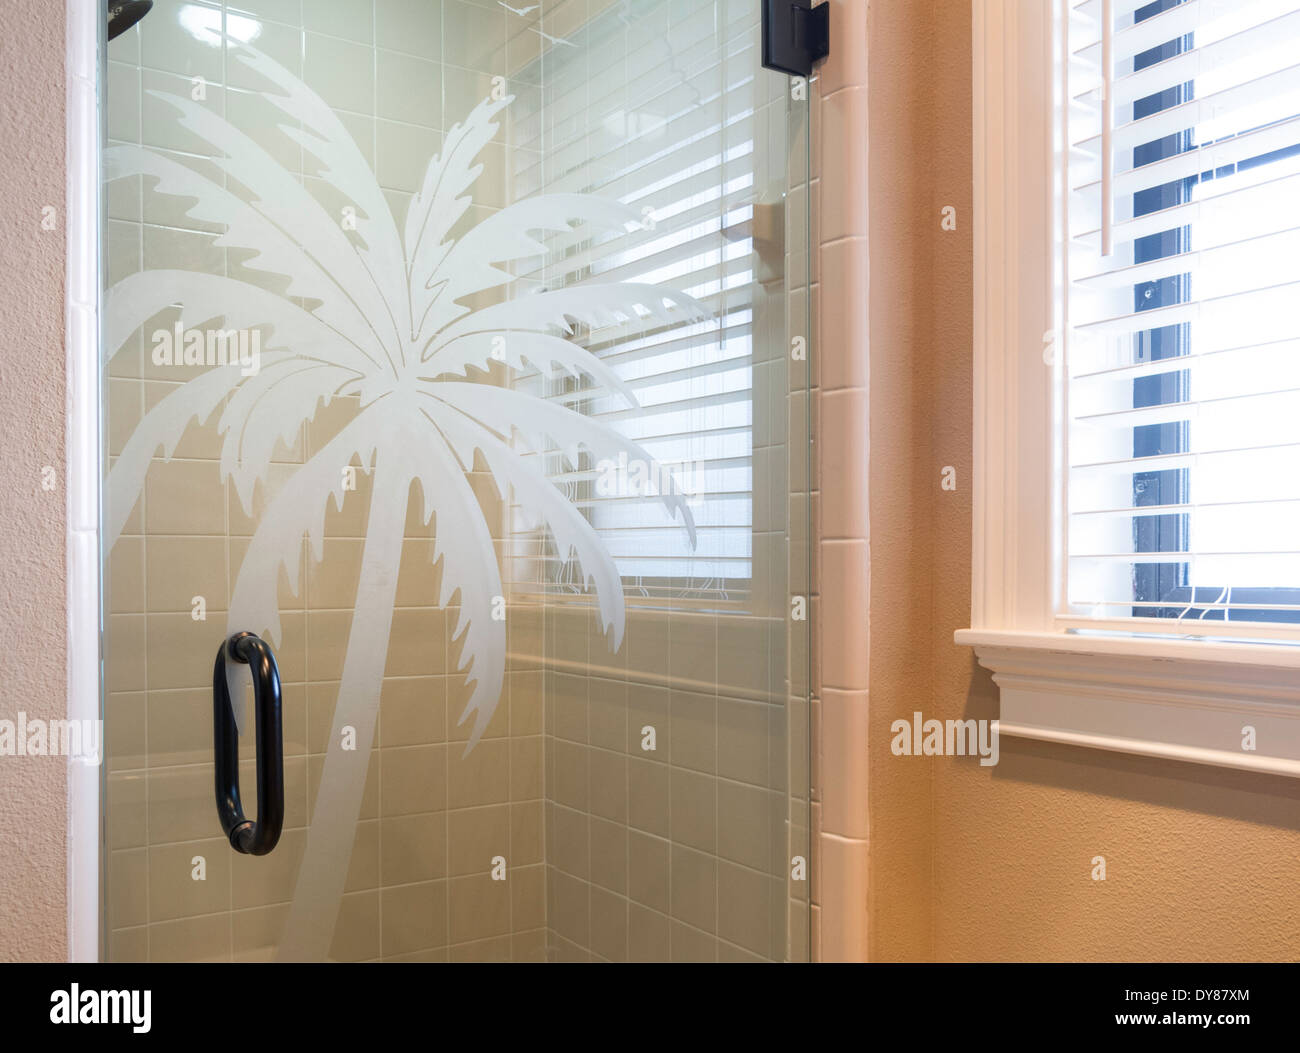 Showcase Bathroom With Glass Shower Door With Etched Palm